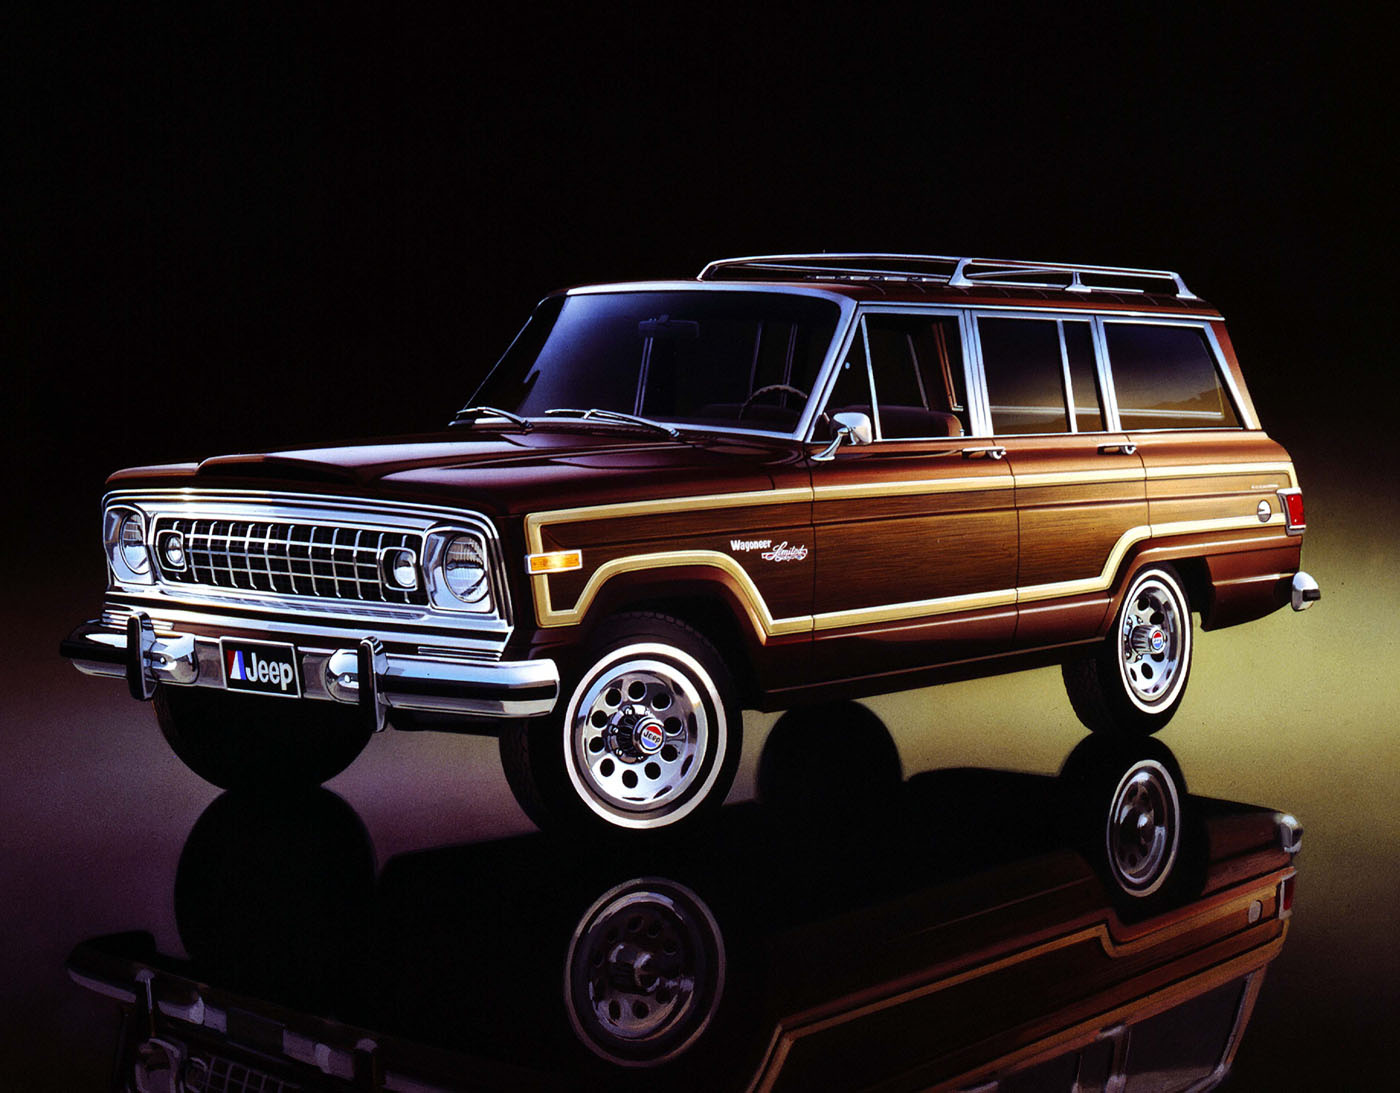 Report: Fiat CEO hints at Jeep Wagoneer returning in high-end style